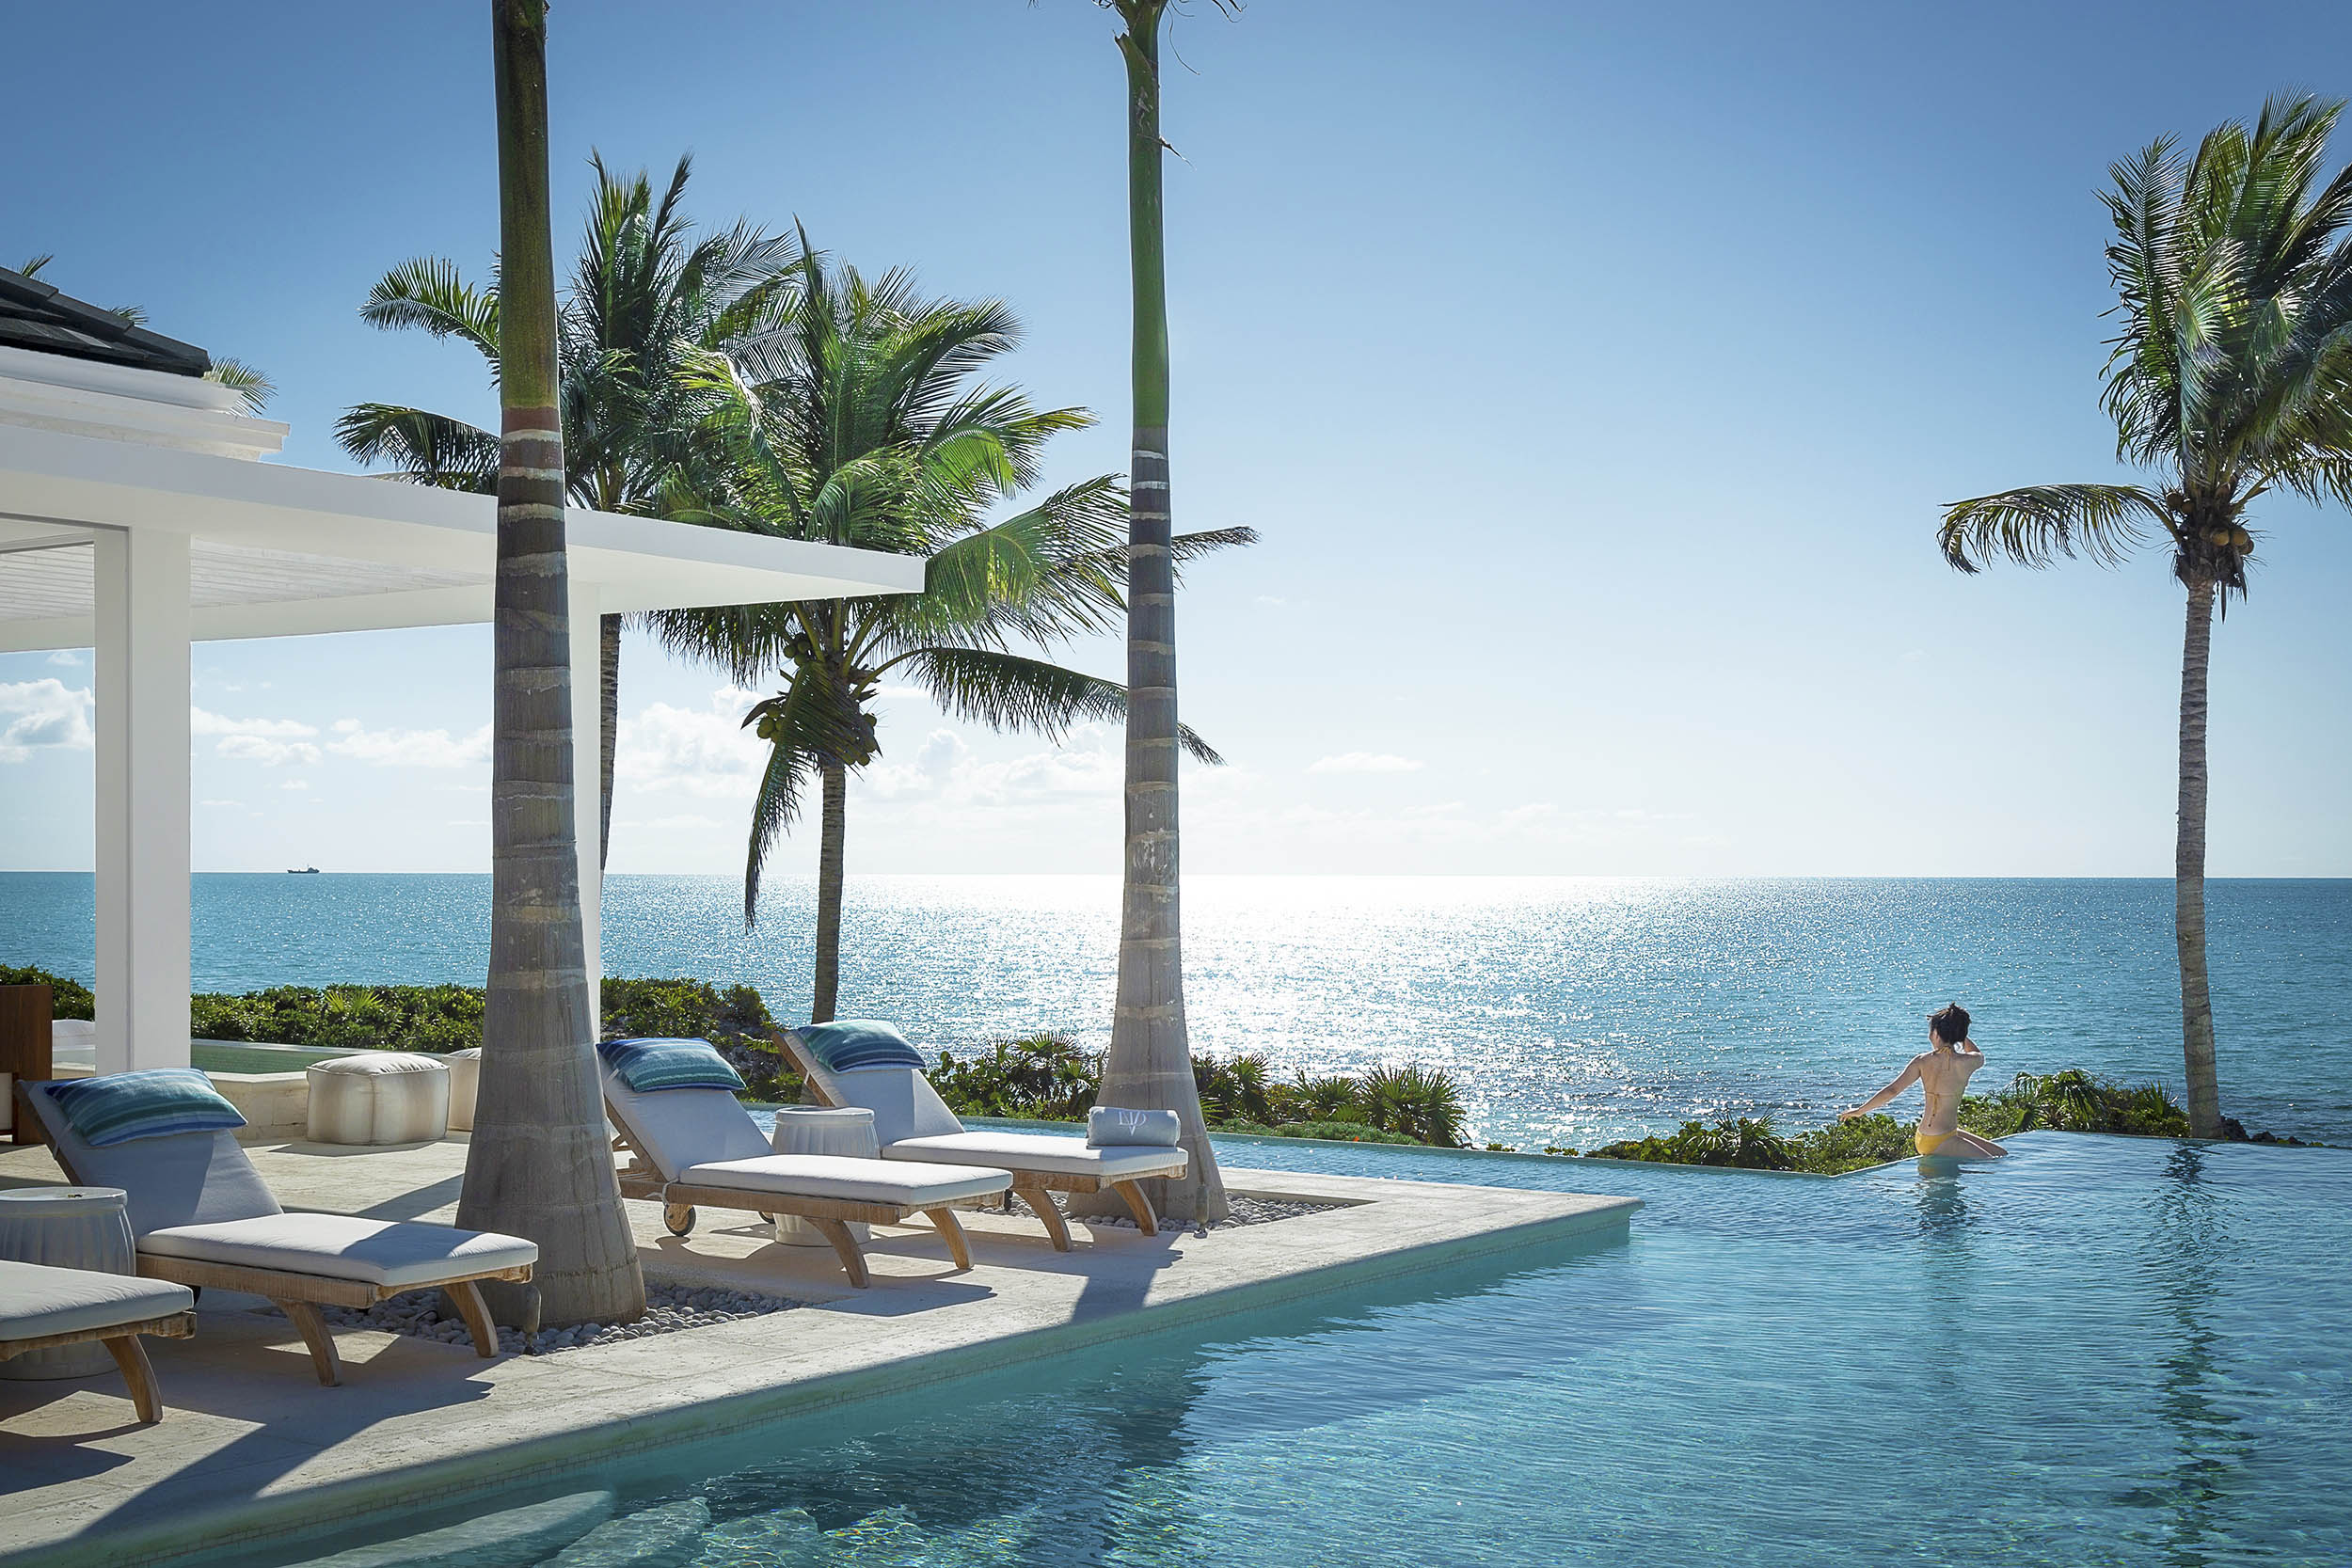 La Dolce Vita - view of the swimming pool with ocean beyond